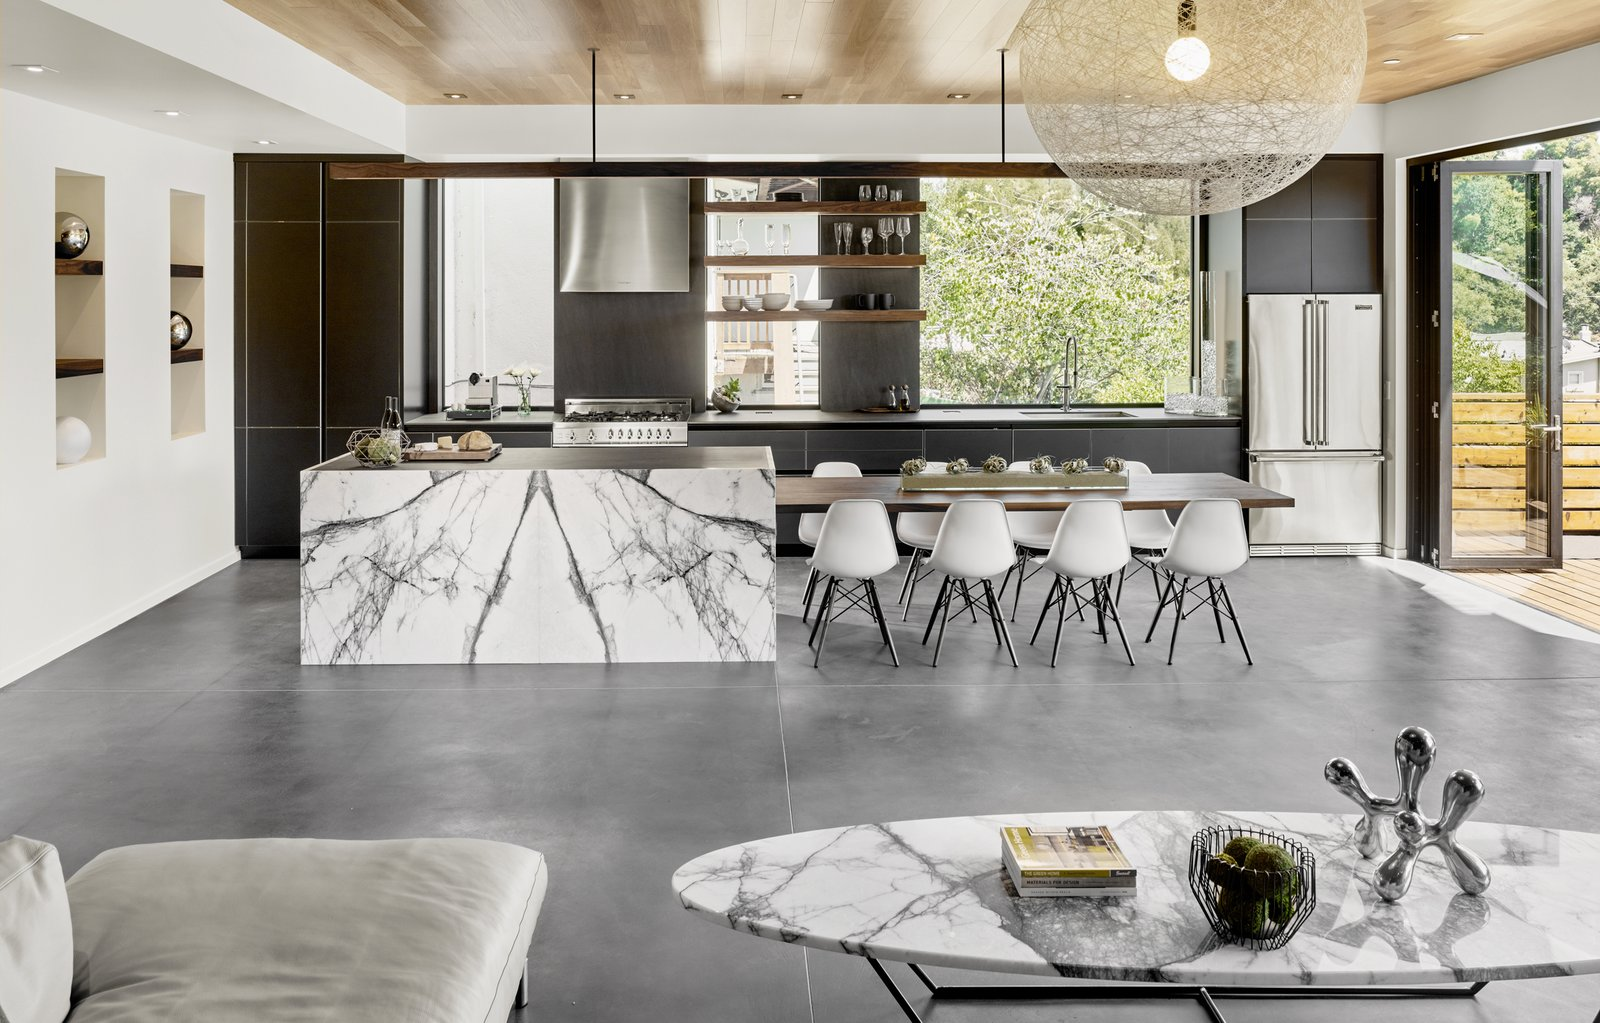 The floors have hydronic heating embedded in a matte finished concrete. The stone slab is Calacatta Viola. The table is custom designed by the architect and fabricated by Gerardo Villa.  Trestle Glen Modern by Knock Architecture + Design